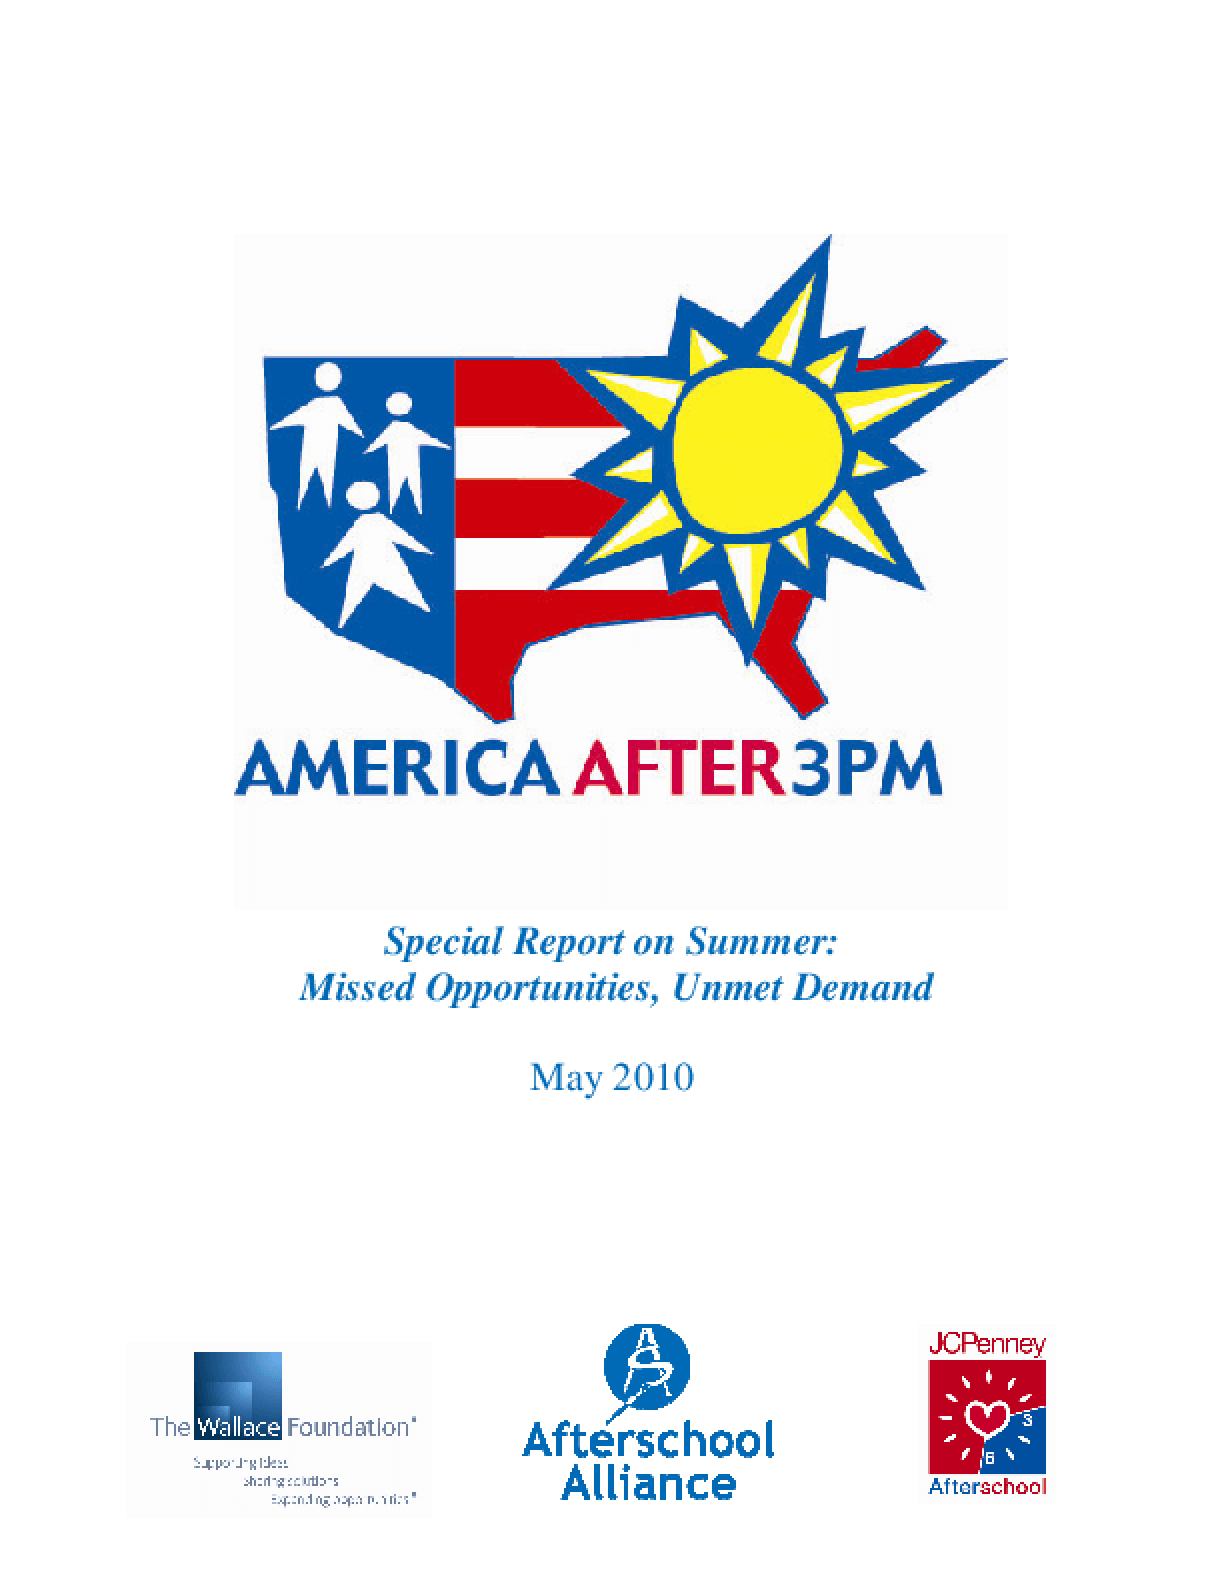 America After 3PM Special Report on Summer